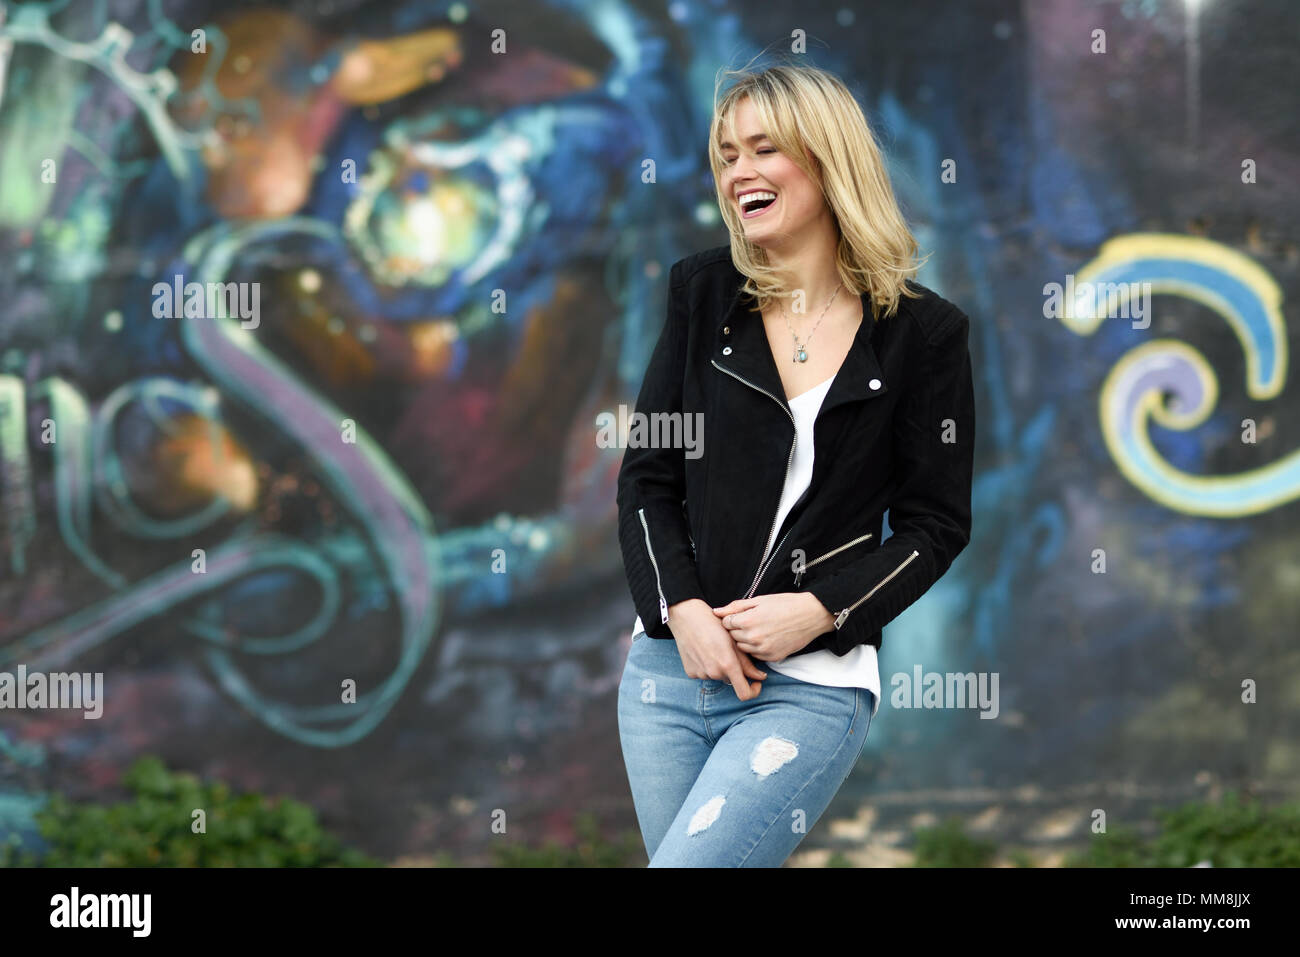 52b139737a5 Funny blonde woman laughing in urban background. Young girl wearing black  zipper jacket and blue